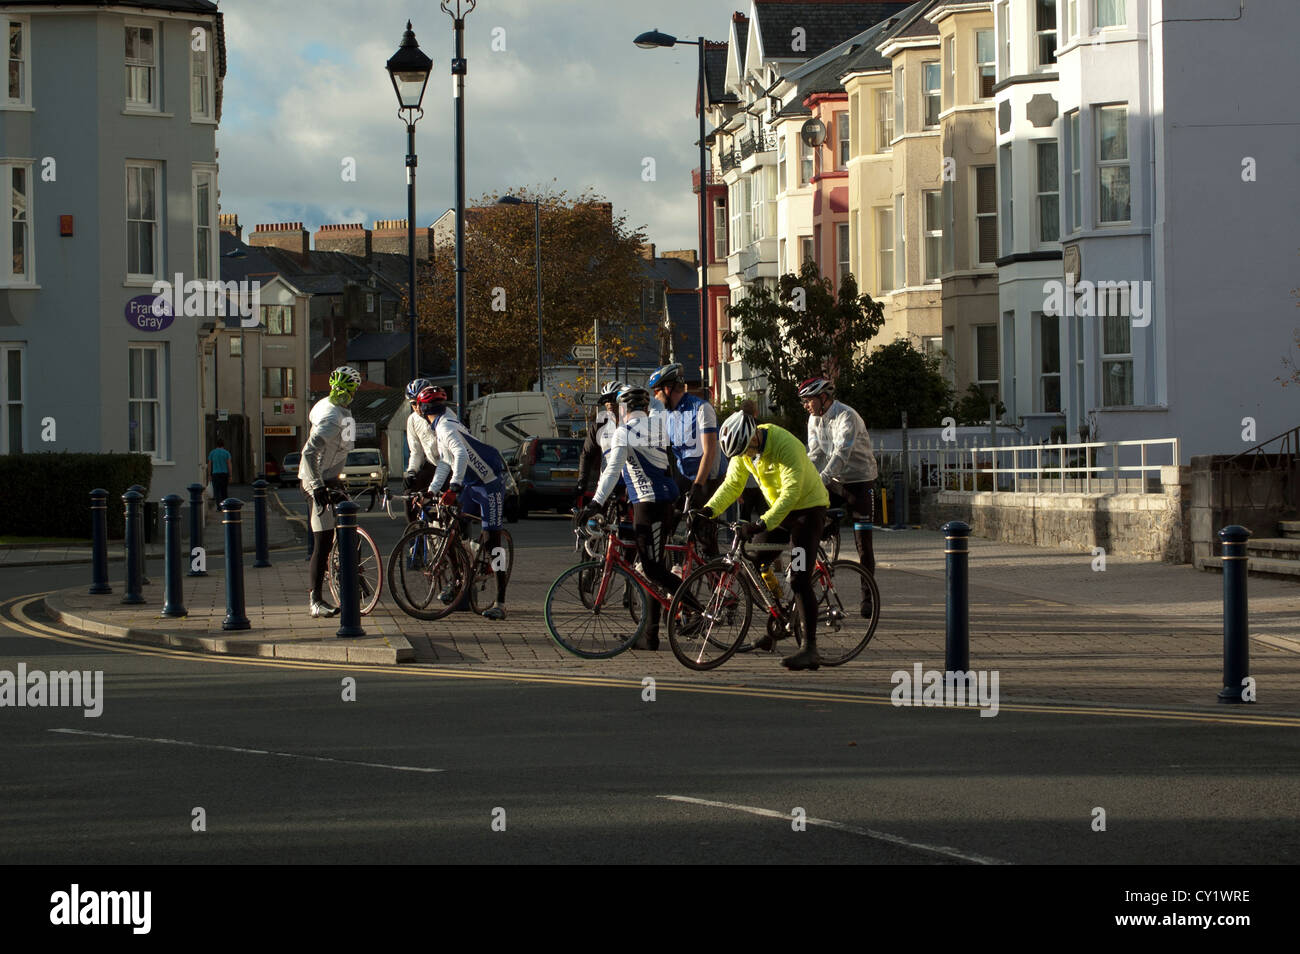 Group of cyclists preparing to go for a ride. - Stock Image